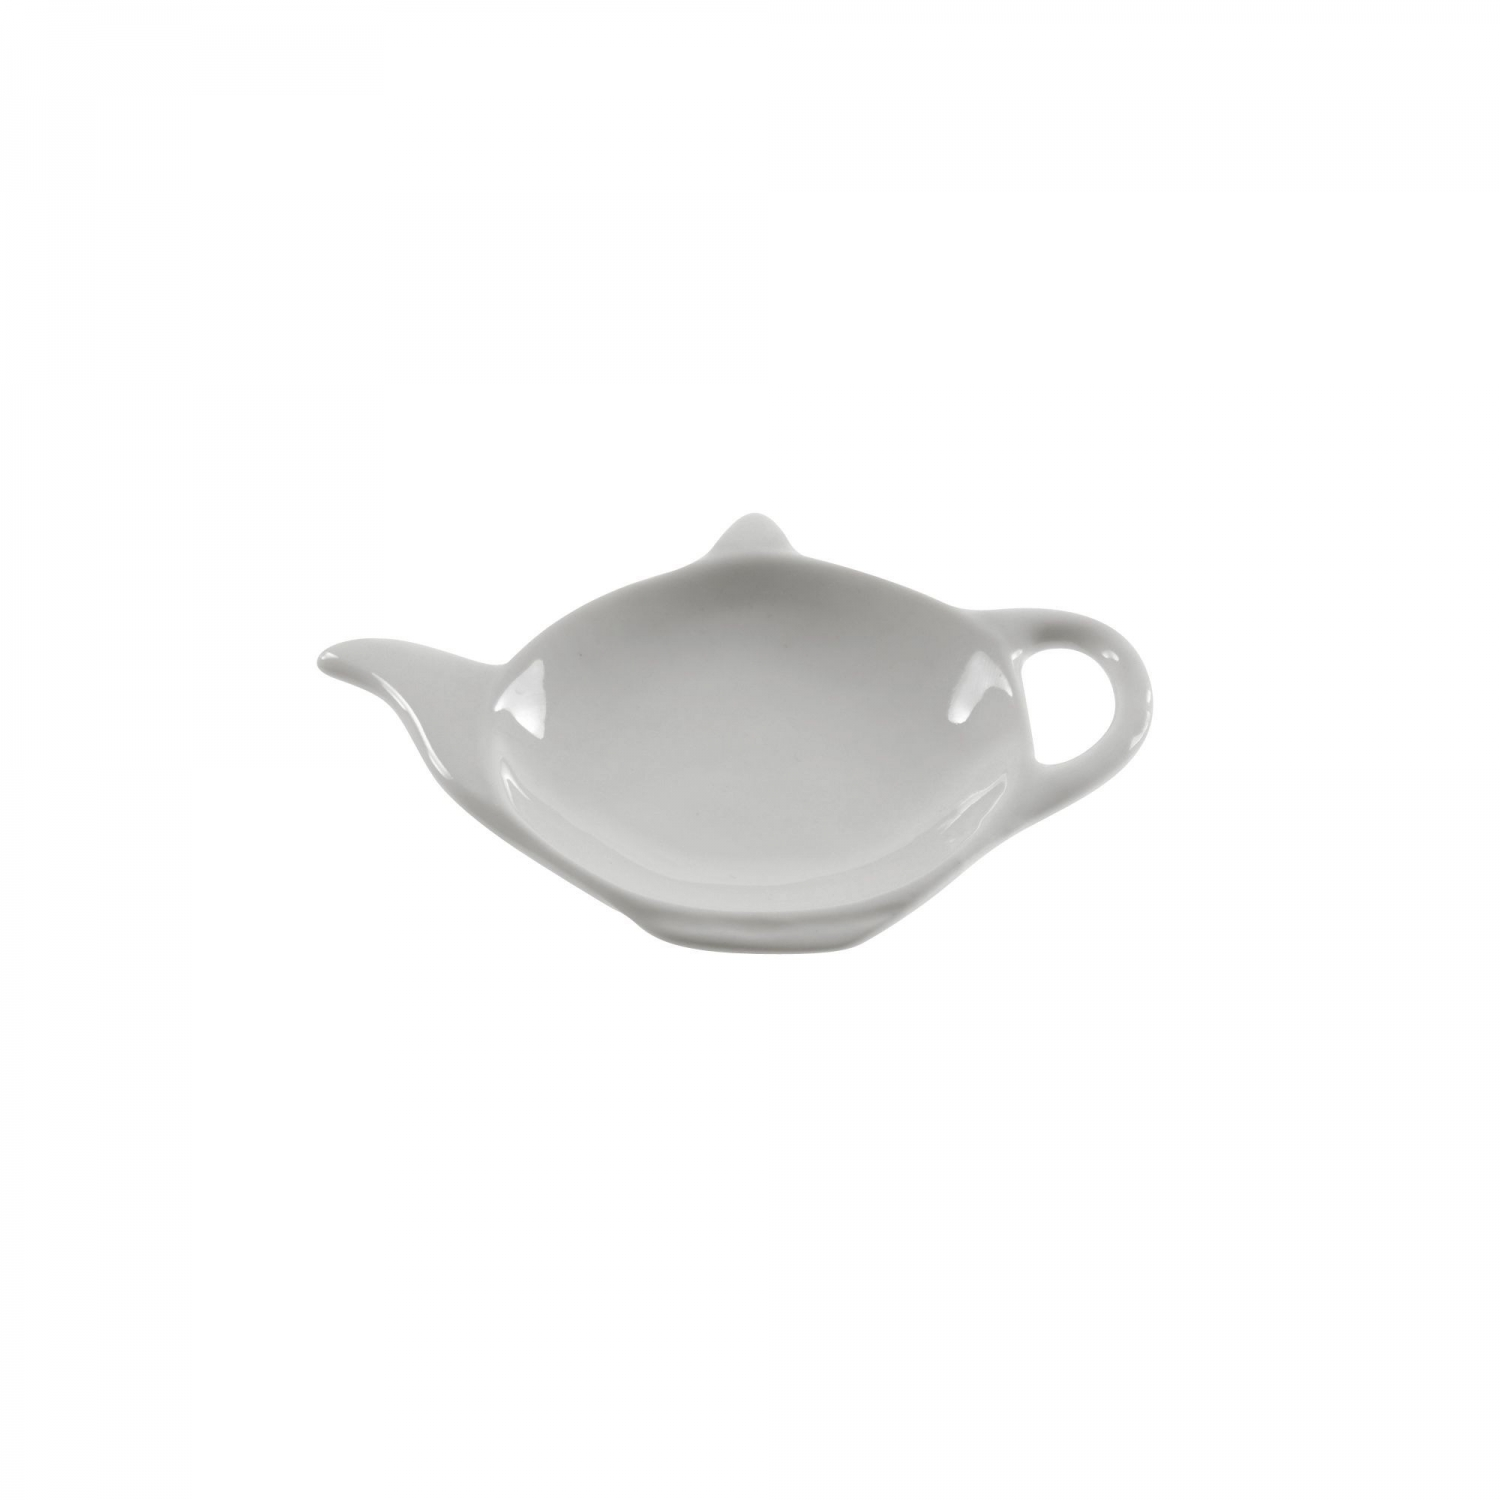 10 Strawberry Street WTR-TEAPOT Whittier Tea Bag Holder